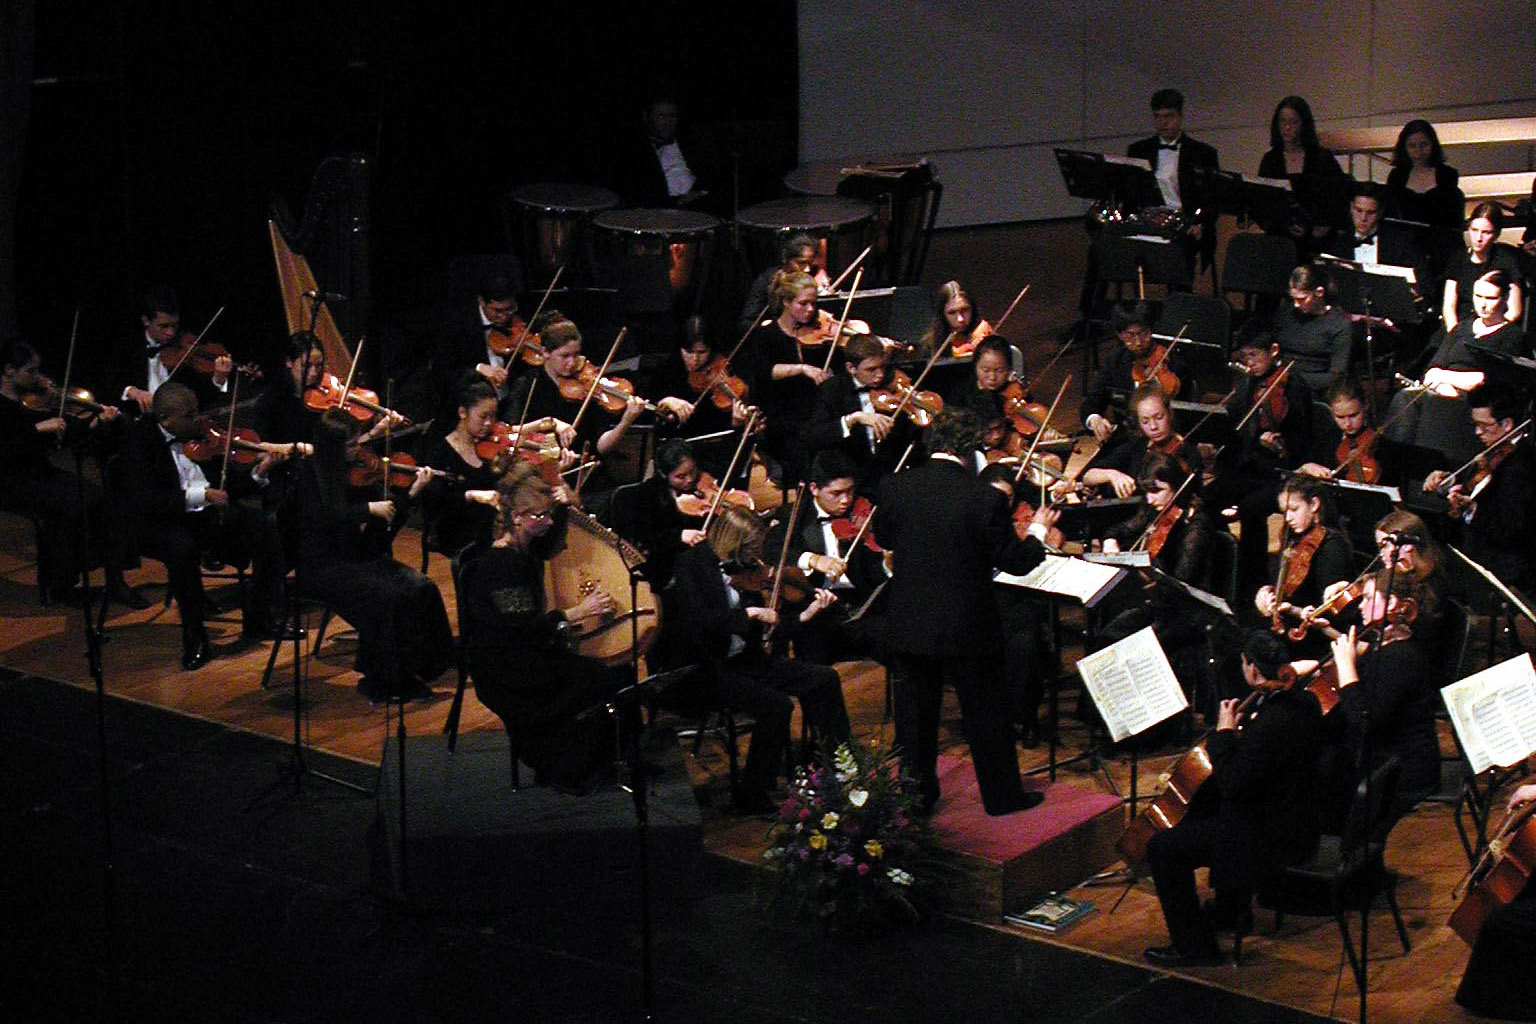 2002-olawithnewmannorchestra1.jpg (346.13 Kb)